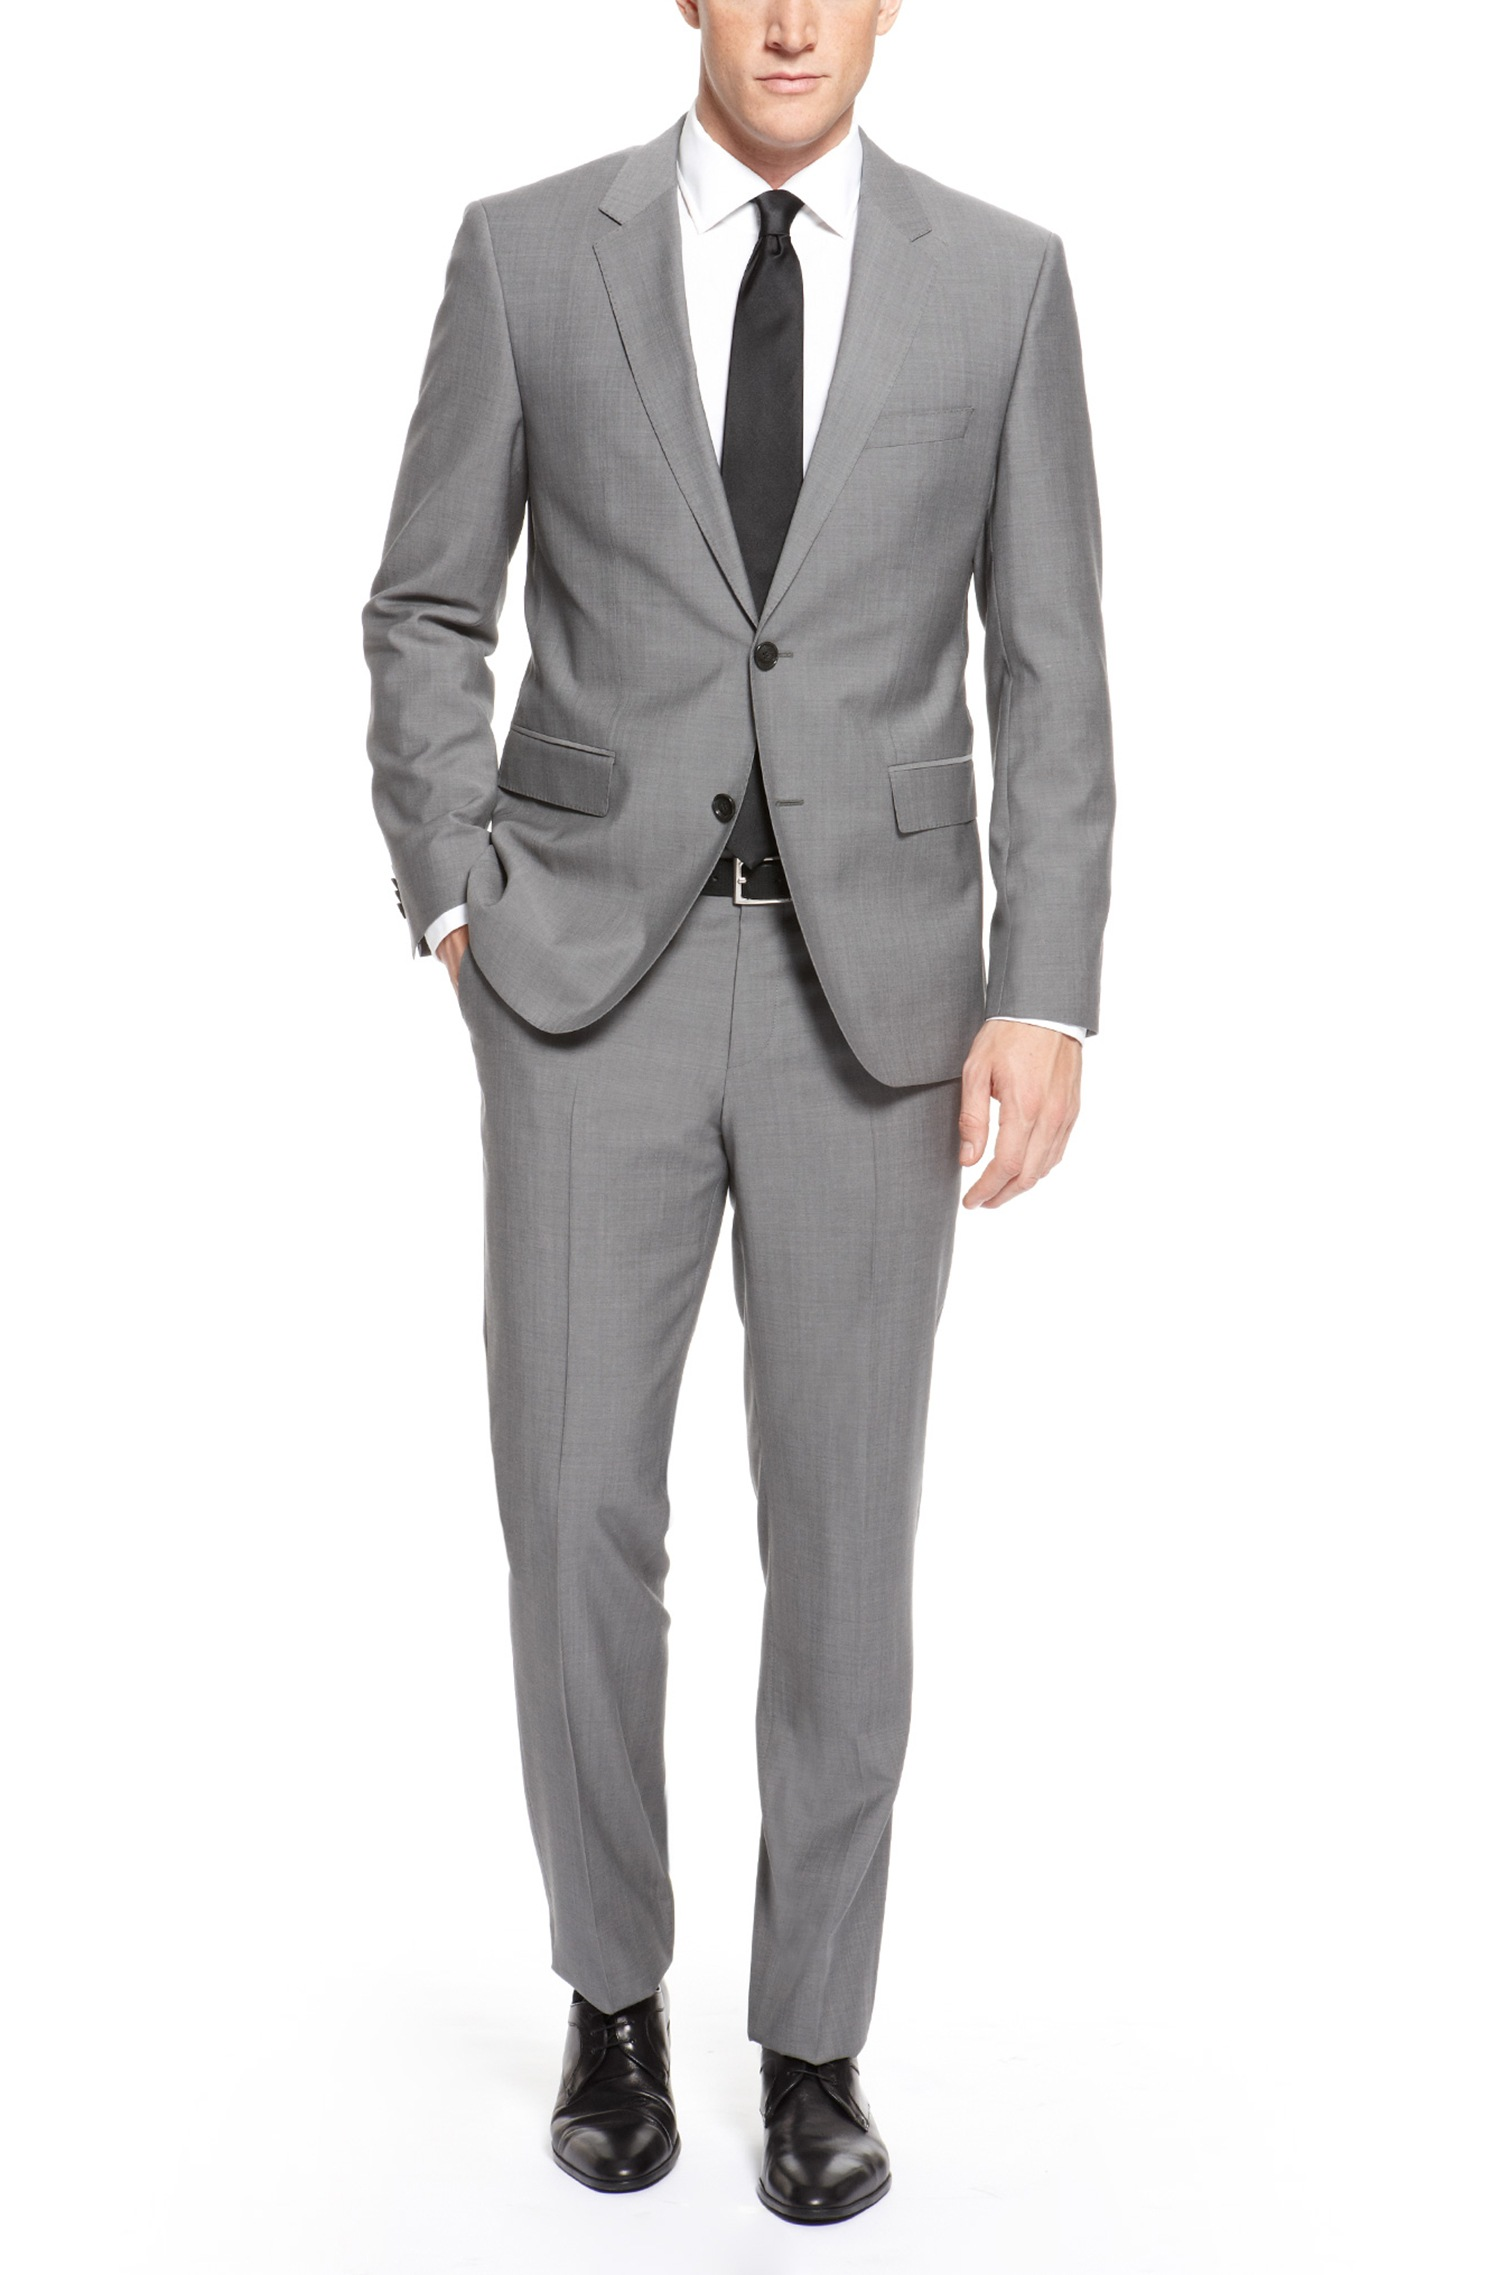 HUGO BOSS Launches Its First Vegan-Certified Suit